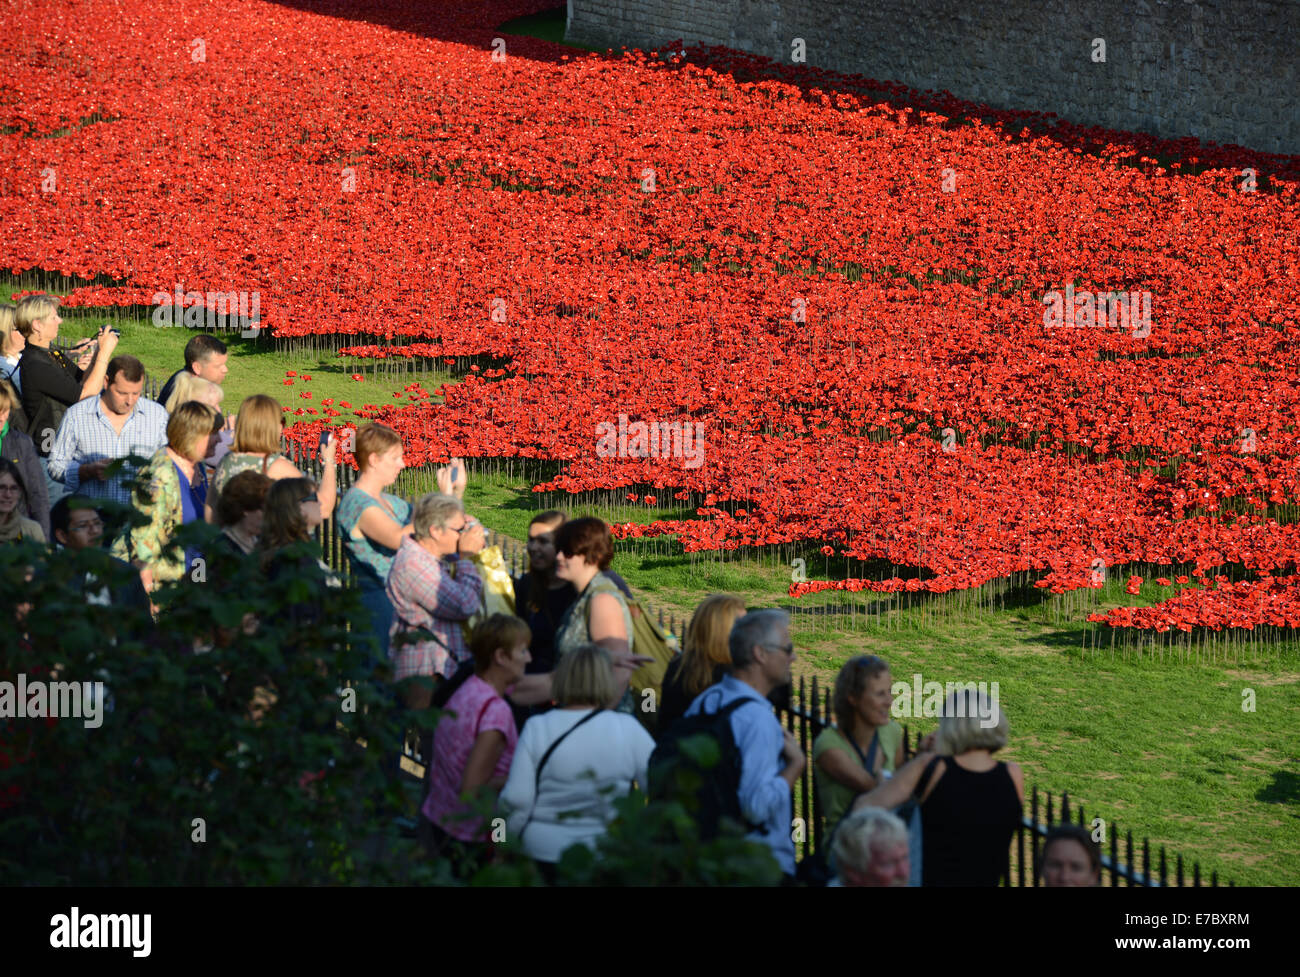 'Blood Swept Lands and Seas of Red' by artist Paul Cummins, at the Tower of London in England UK - Stock Image